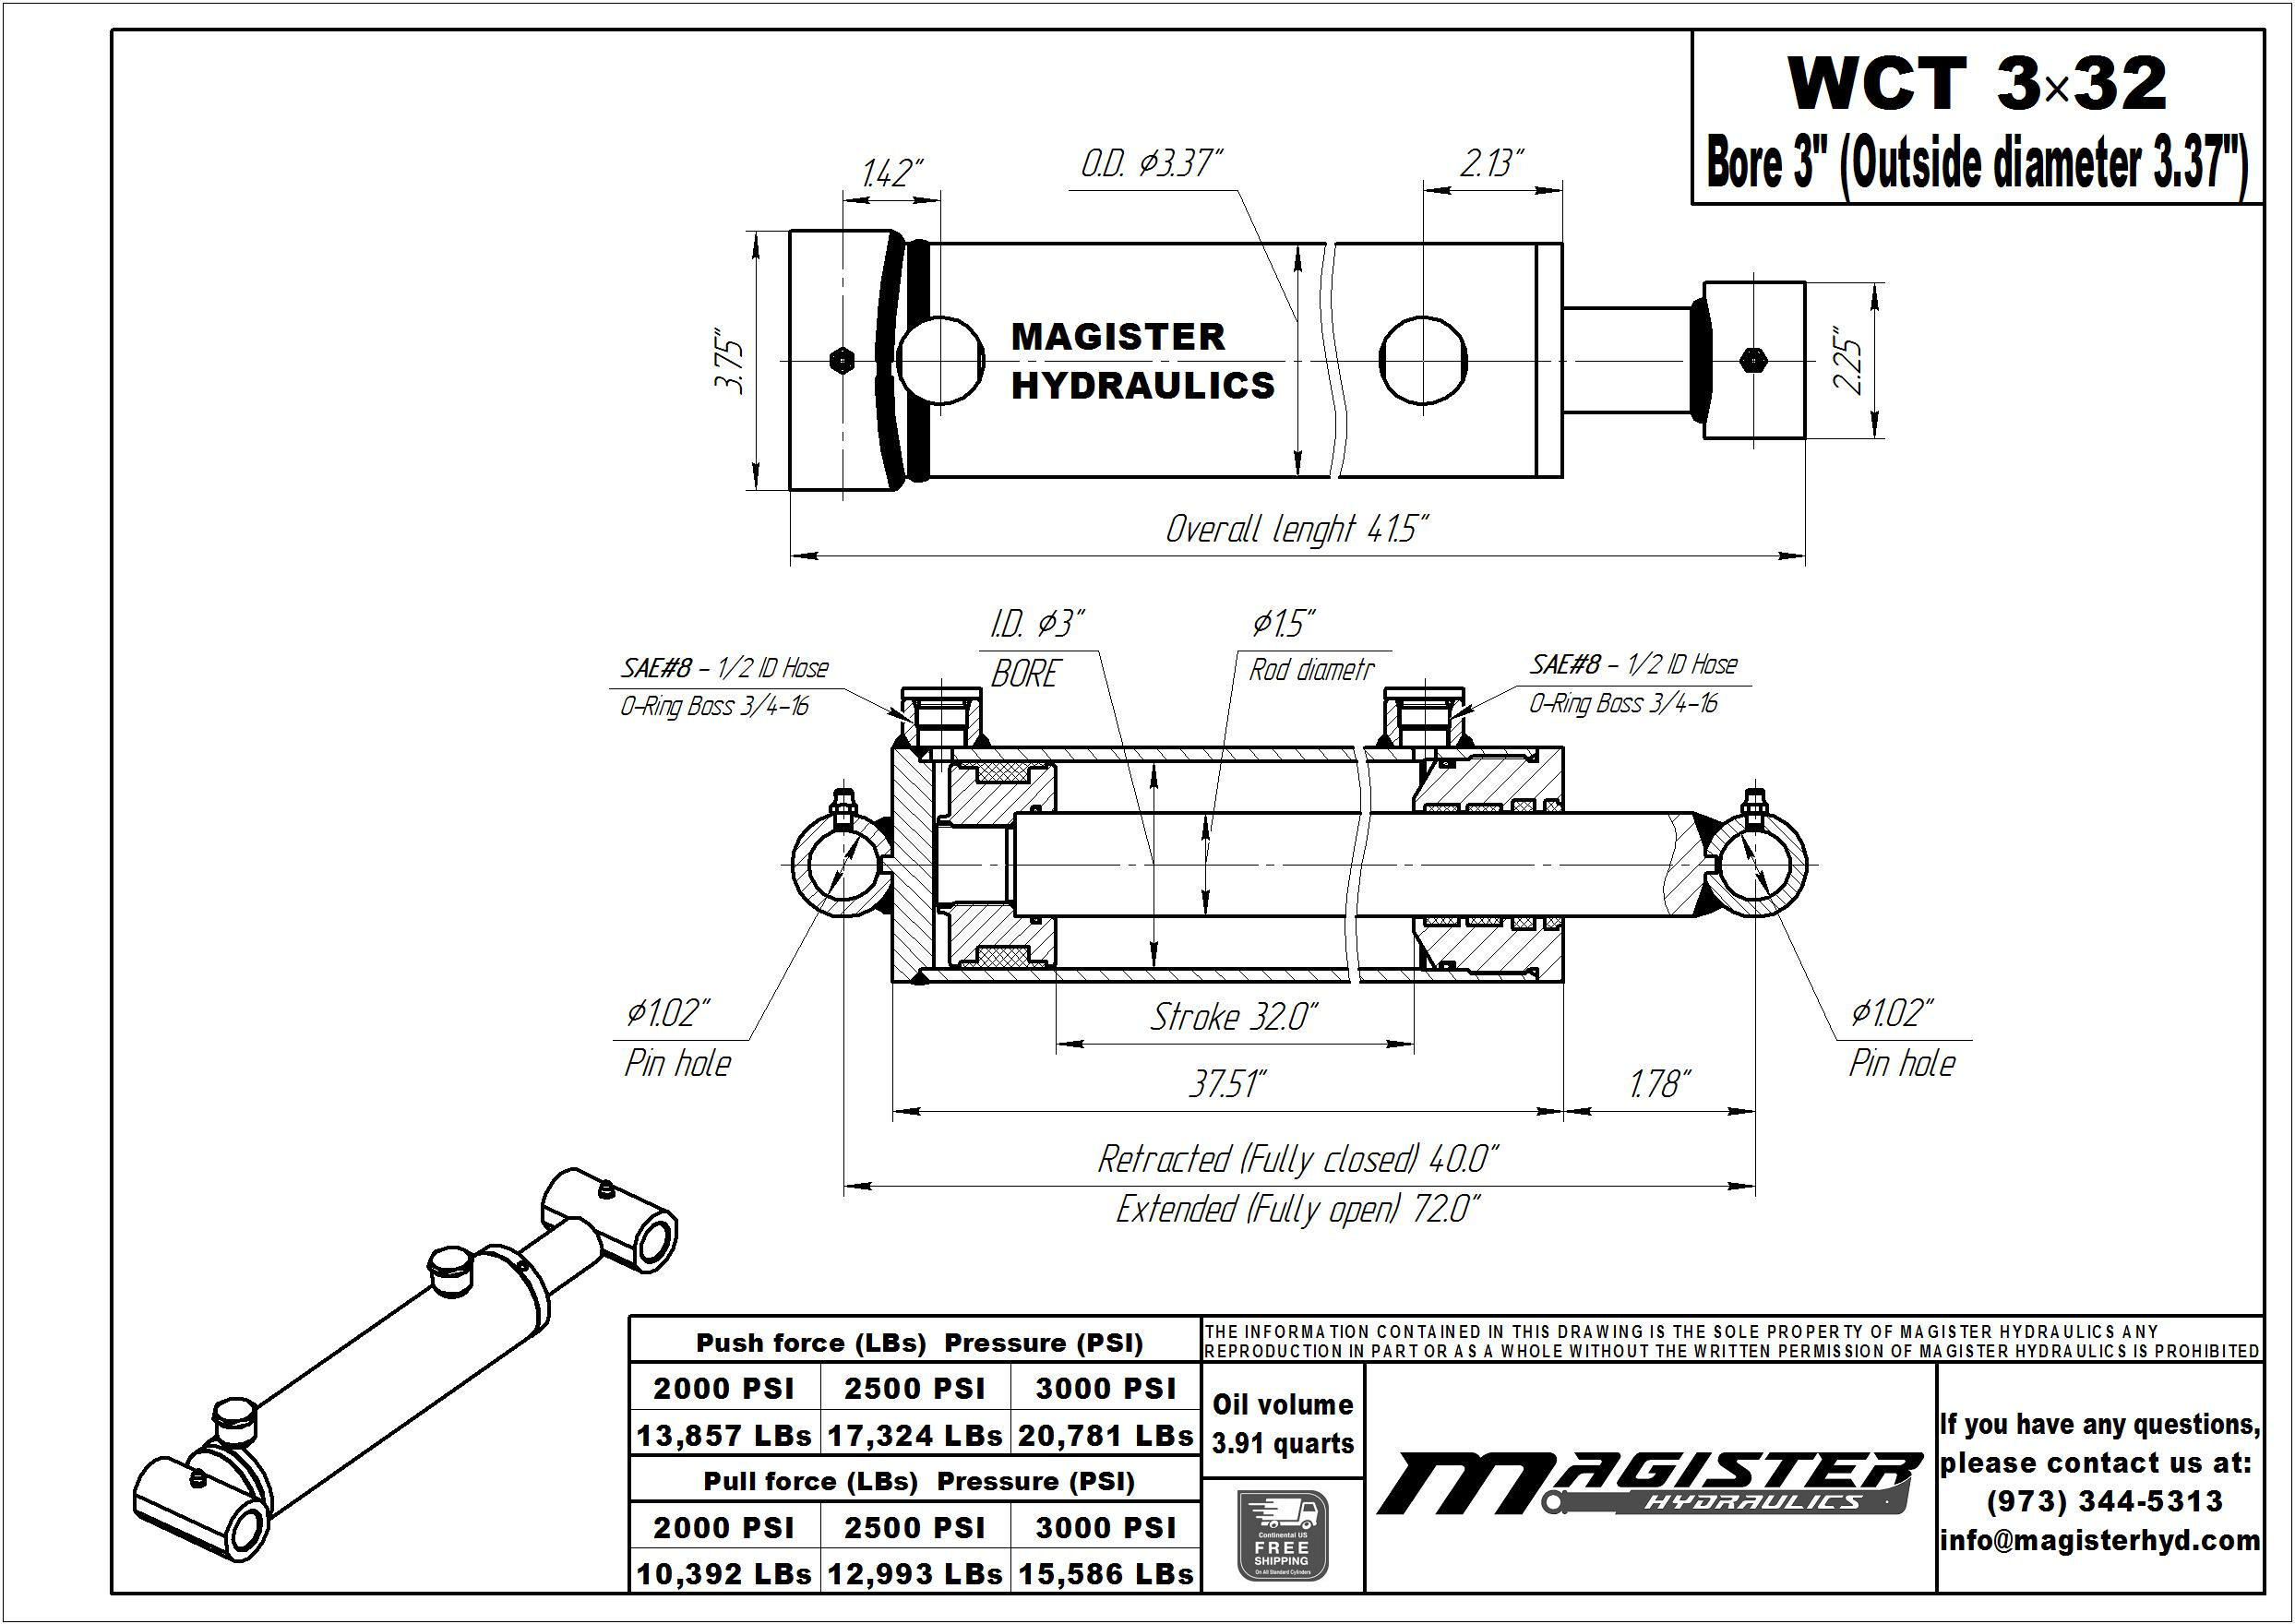 3 bore x 32 stroke hydraulic cylinder, welded cross tube double acting cylinder | Magister Hydraulics